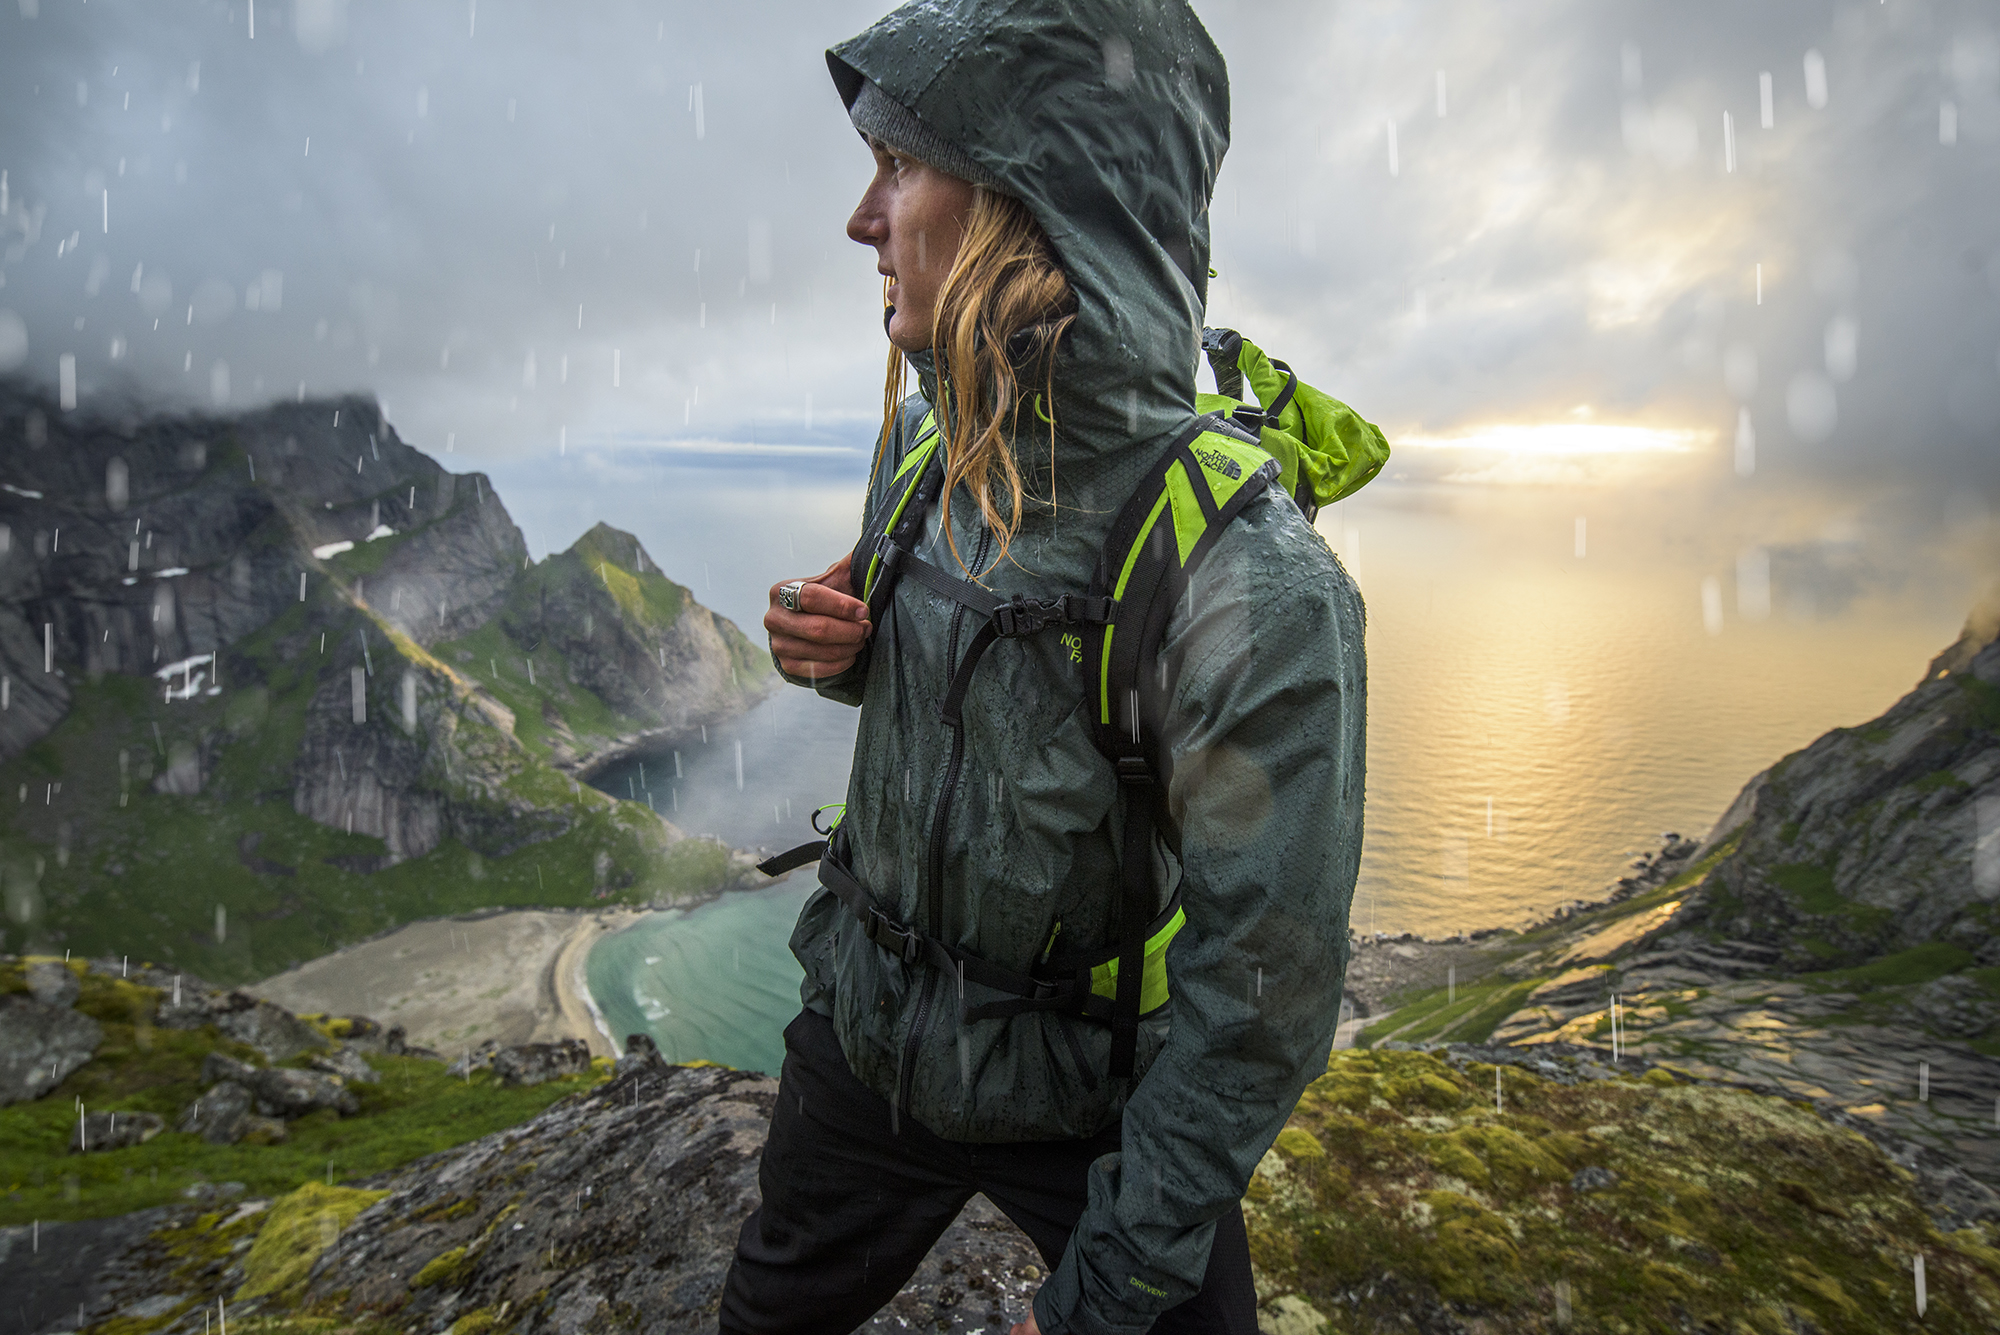 Johnny Collinson. The North Face Spring 2016 Rainwear. Lofoten, Norway. Photography by Tim Kemple.